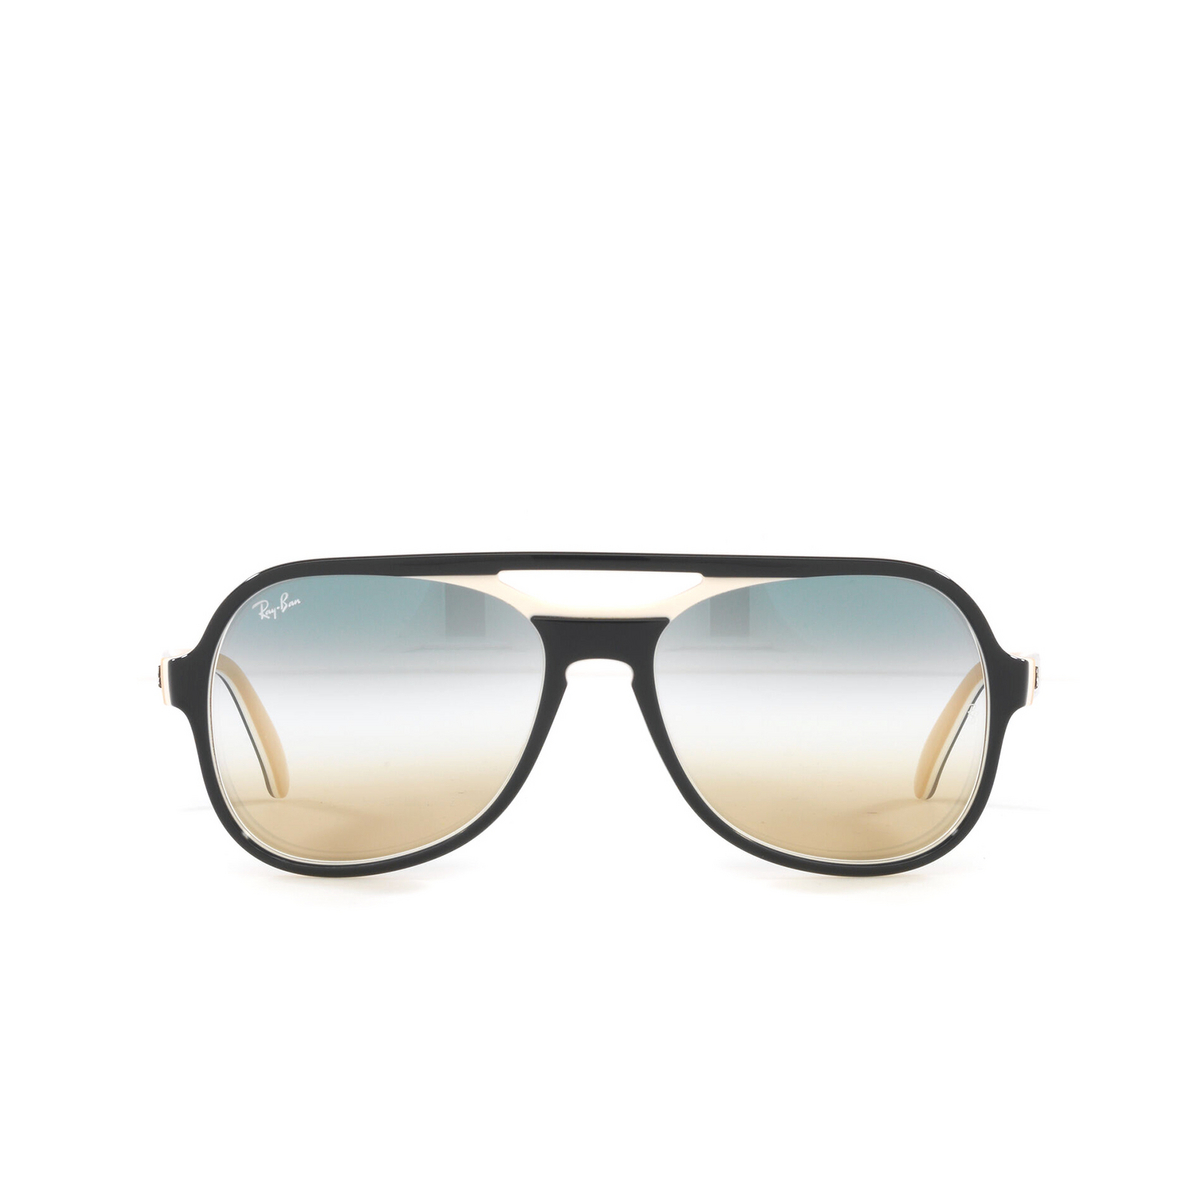 Ray-Ban® Aviator Sunglasses: Powderhorn RB4357 color Blue Creamy Light Brown 6548GD - front view.